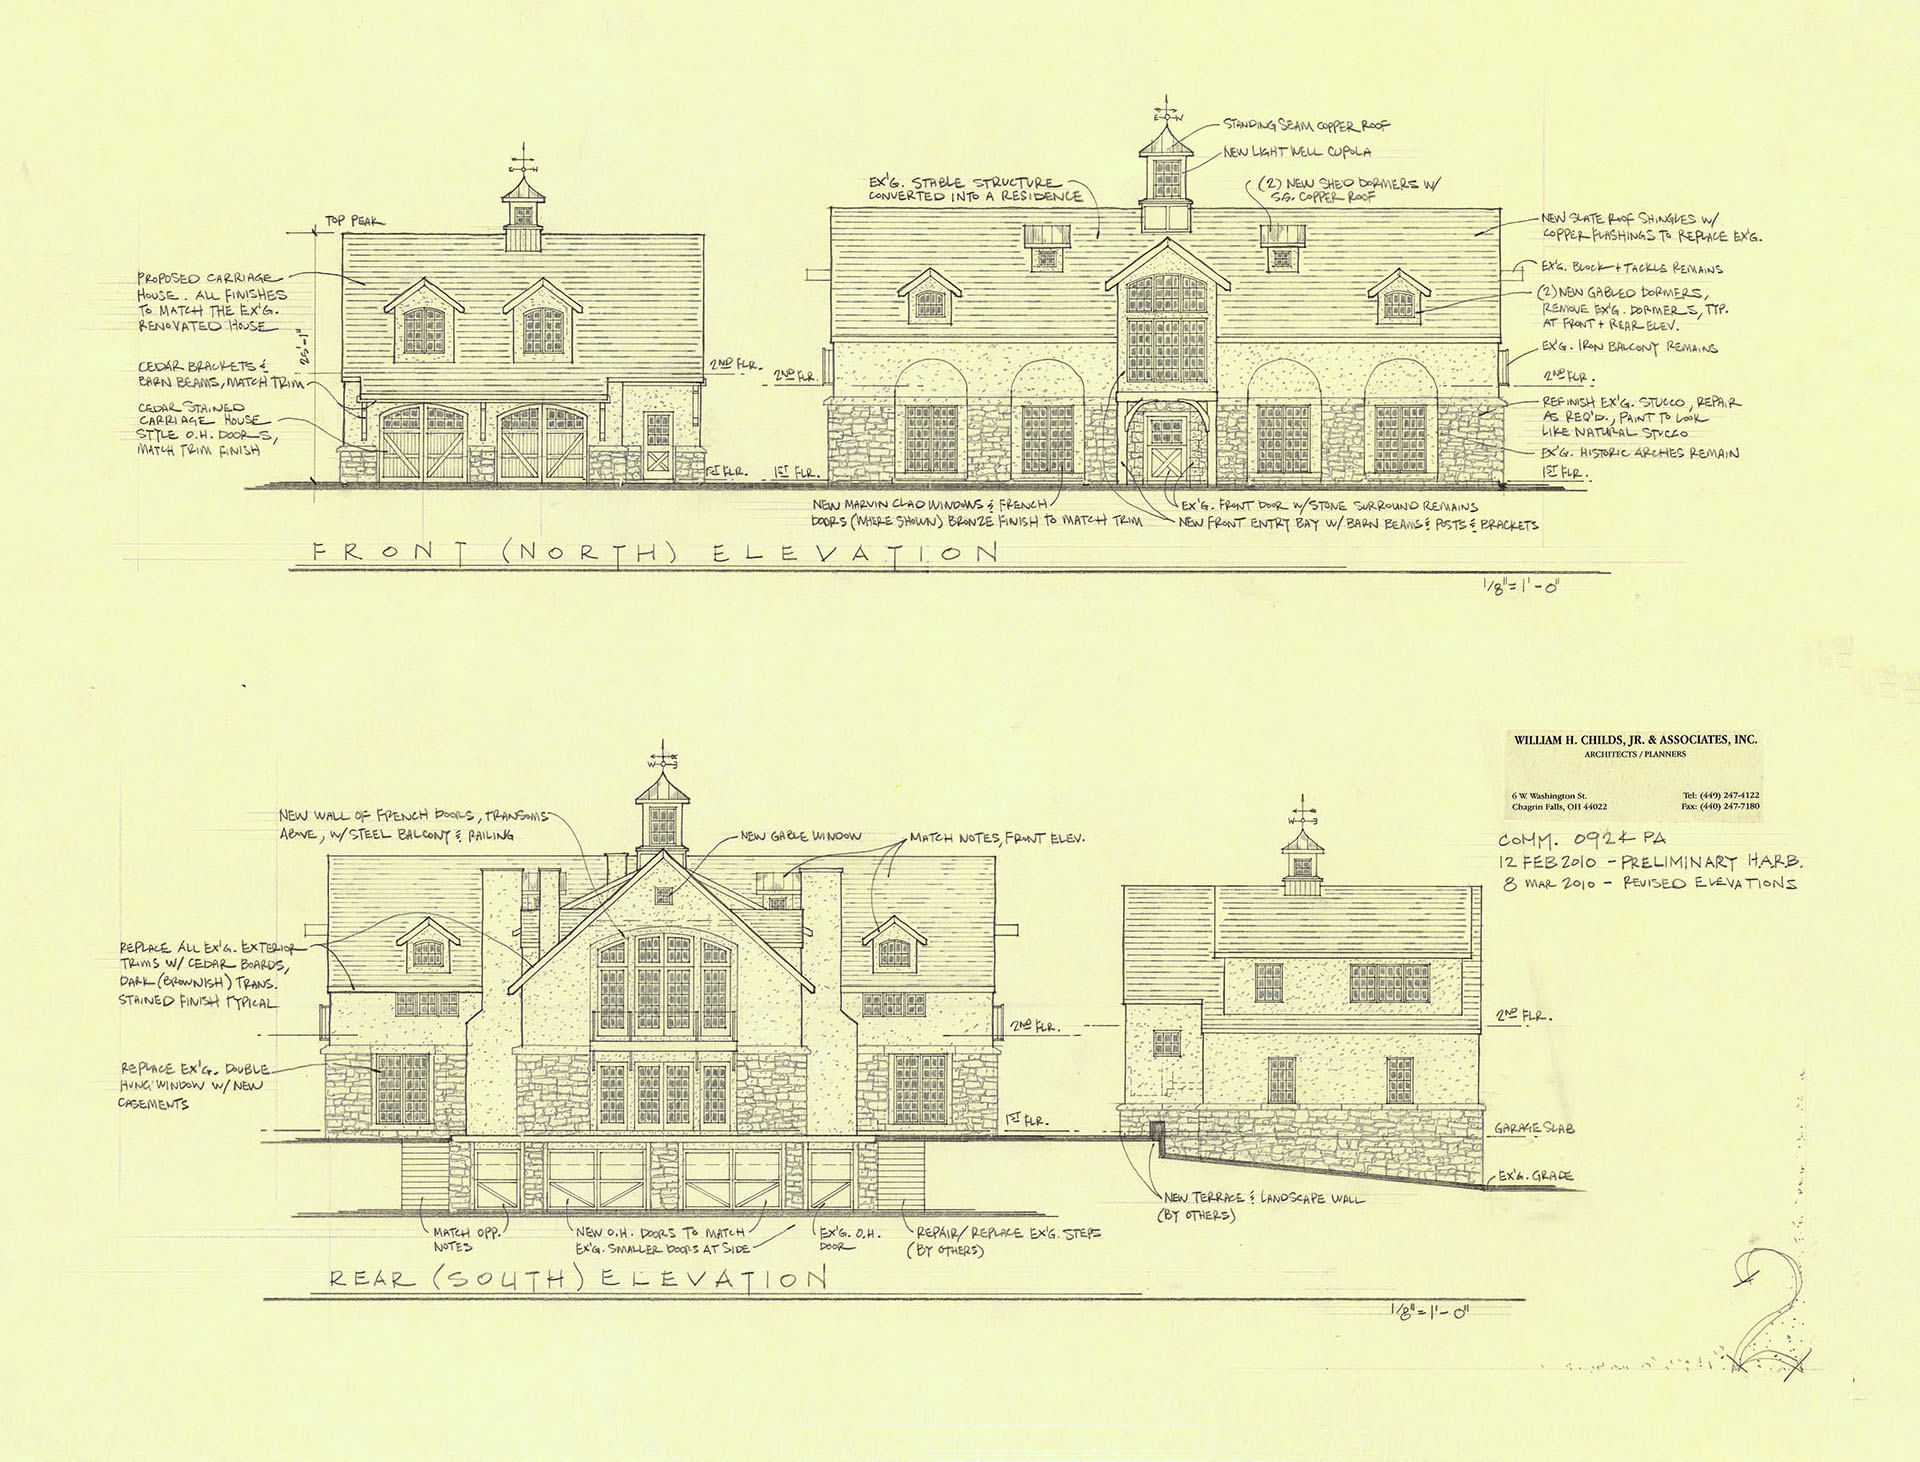 On The Boards Wh Childs Jr Associates Inc Cupola Schematic Back To List